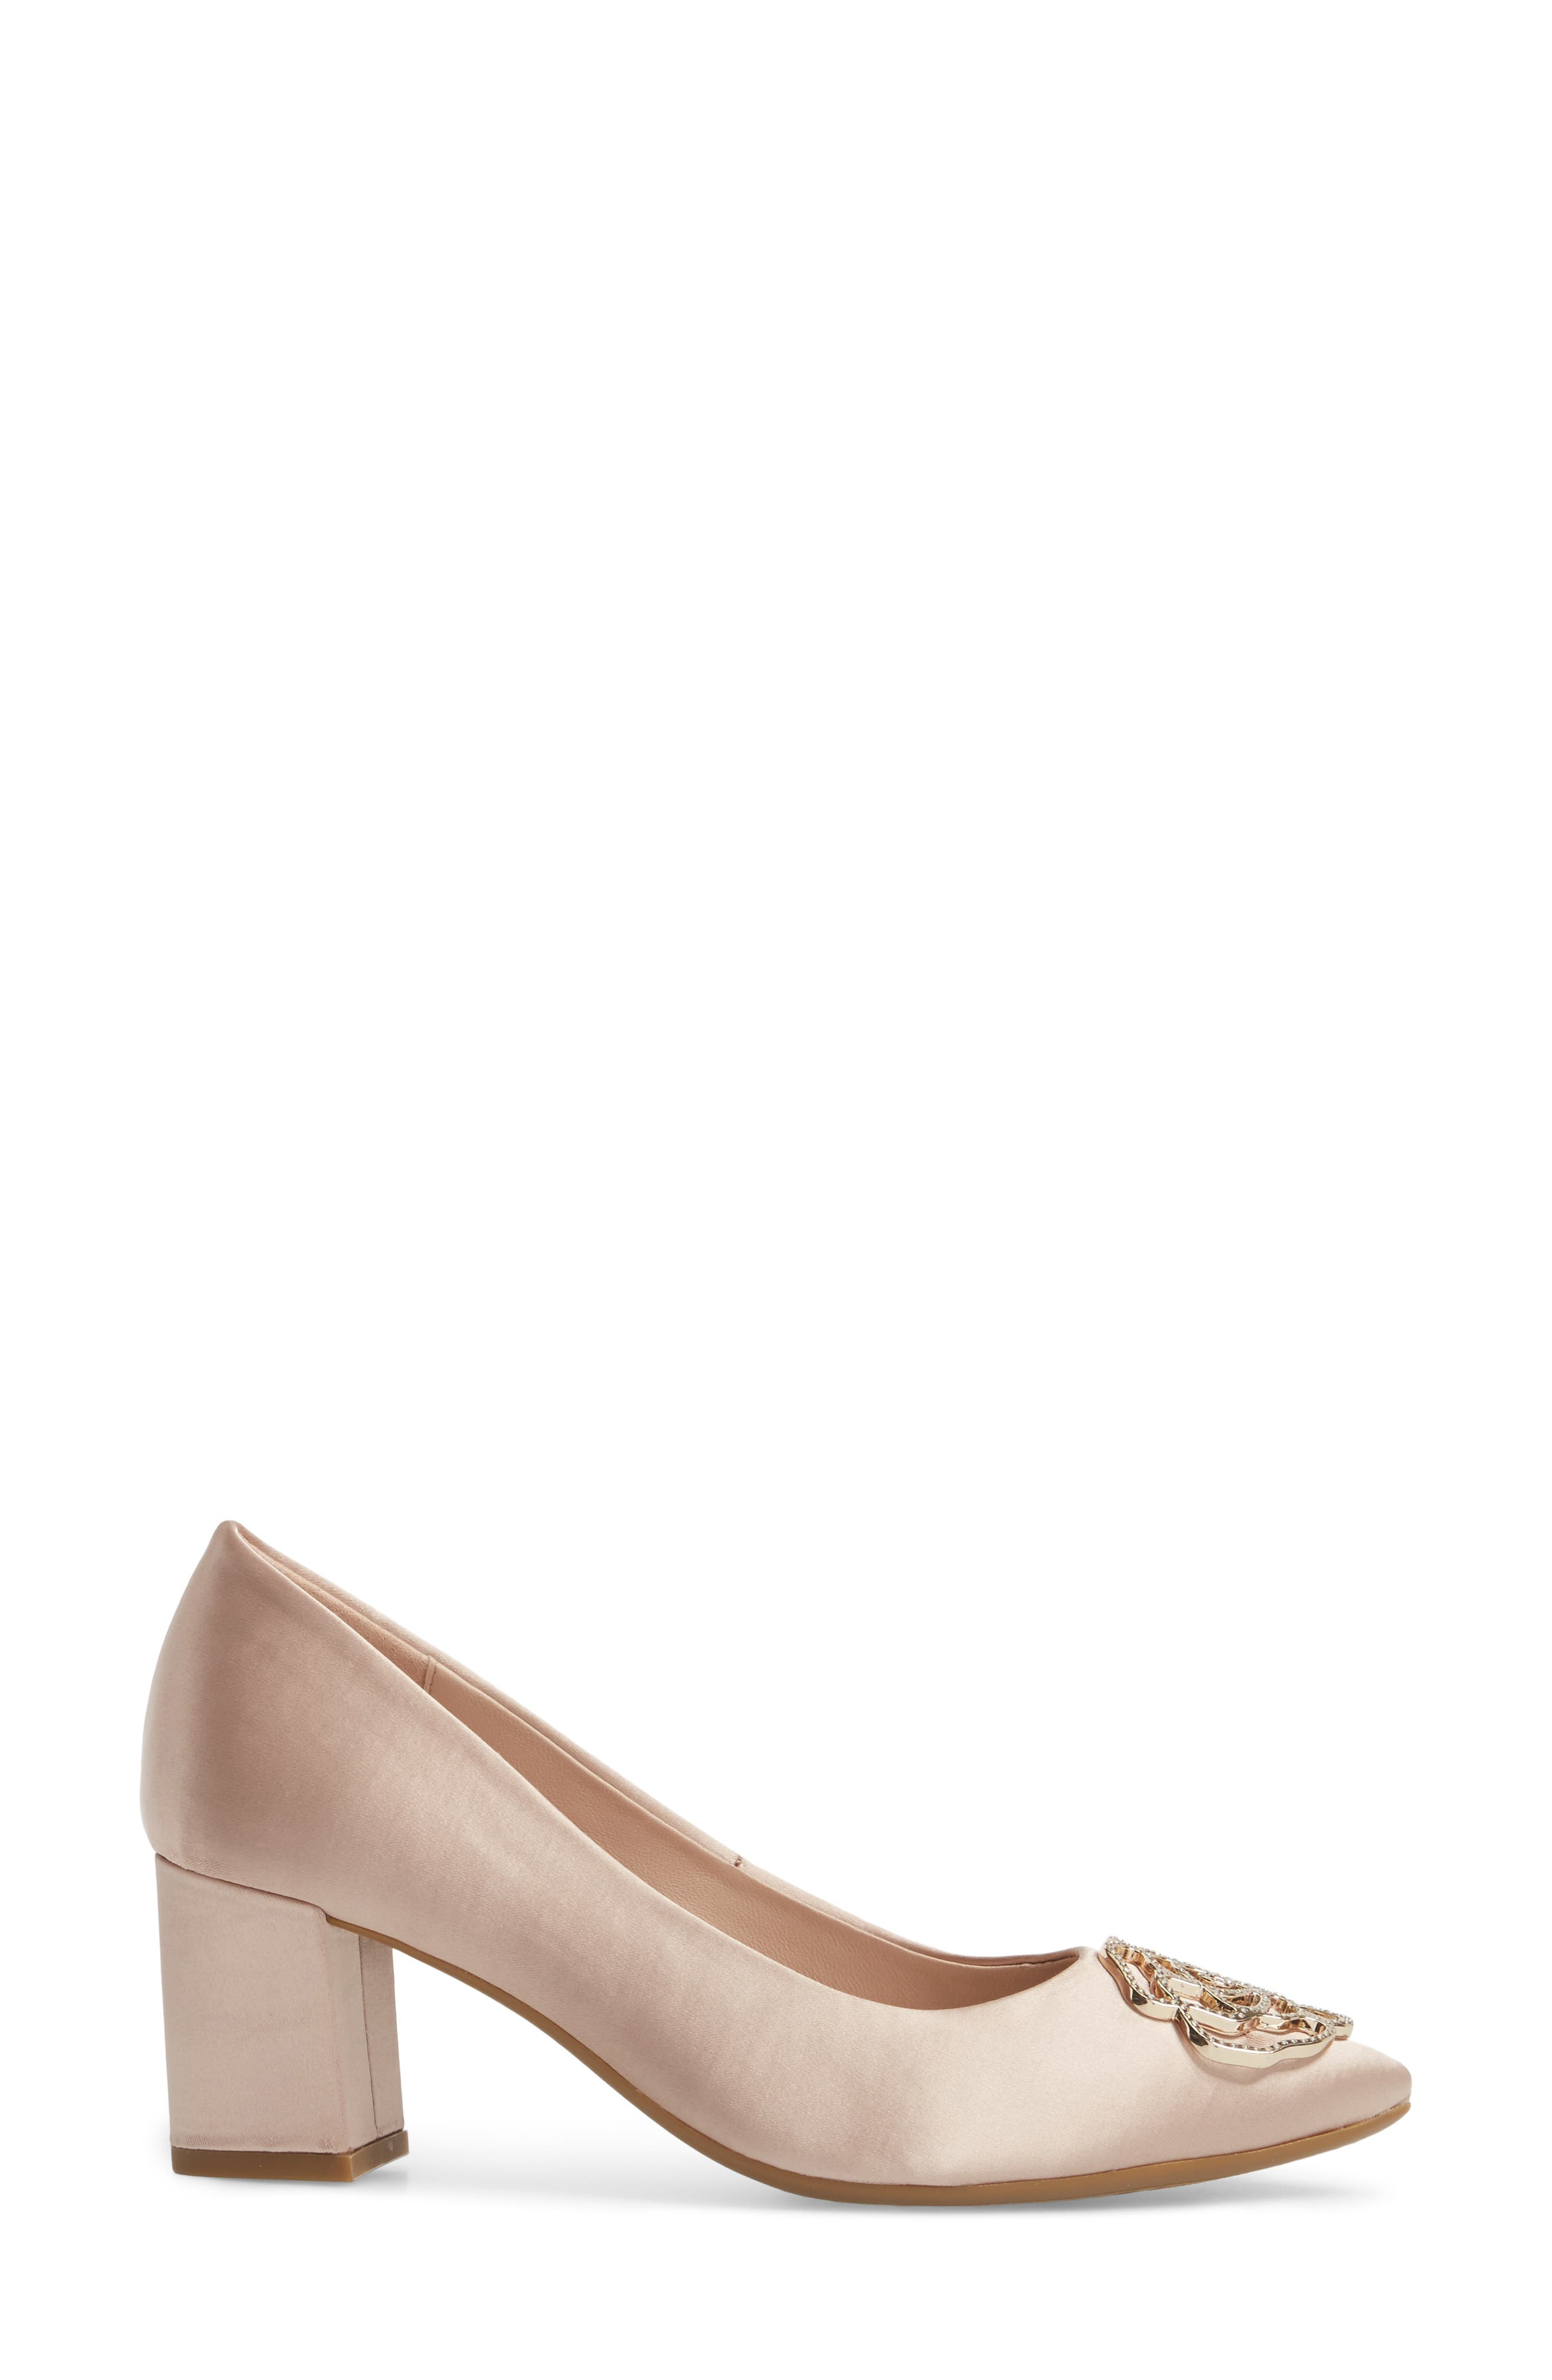 Maci Pump,                             Alternate thumbnail 3, color,                             Blush Satin Fabric